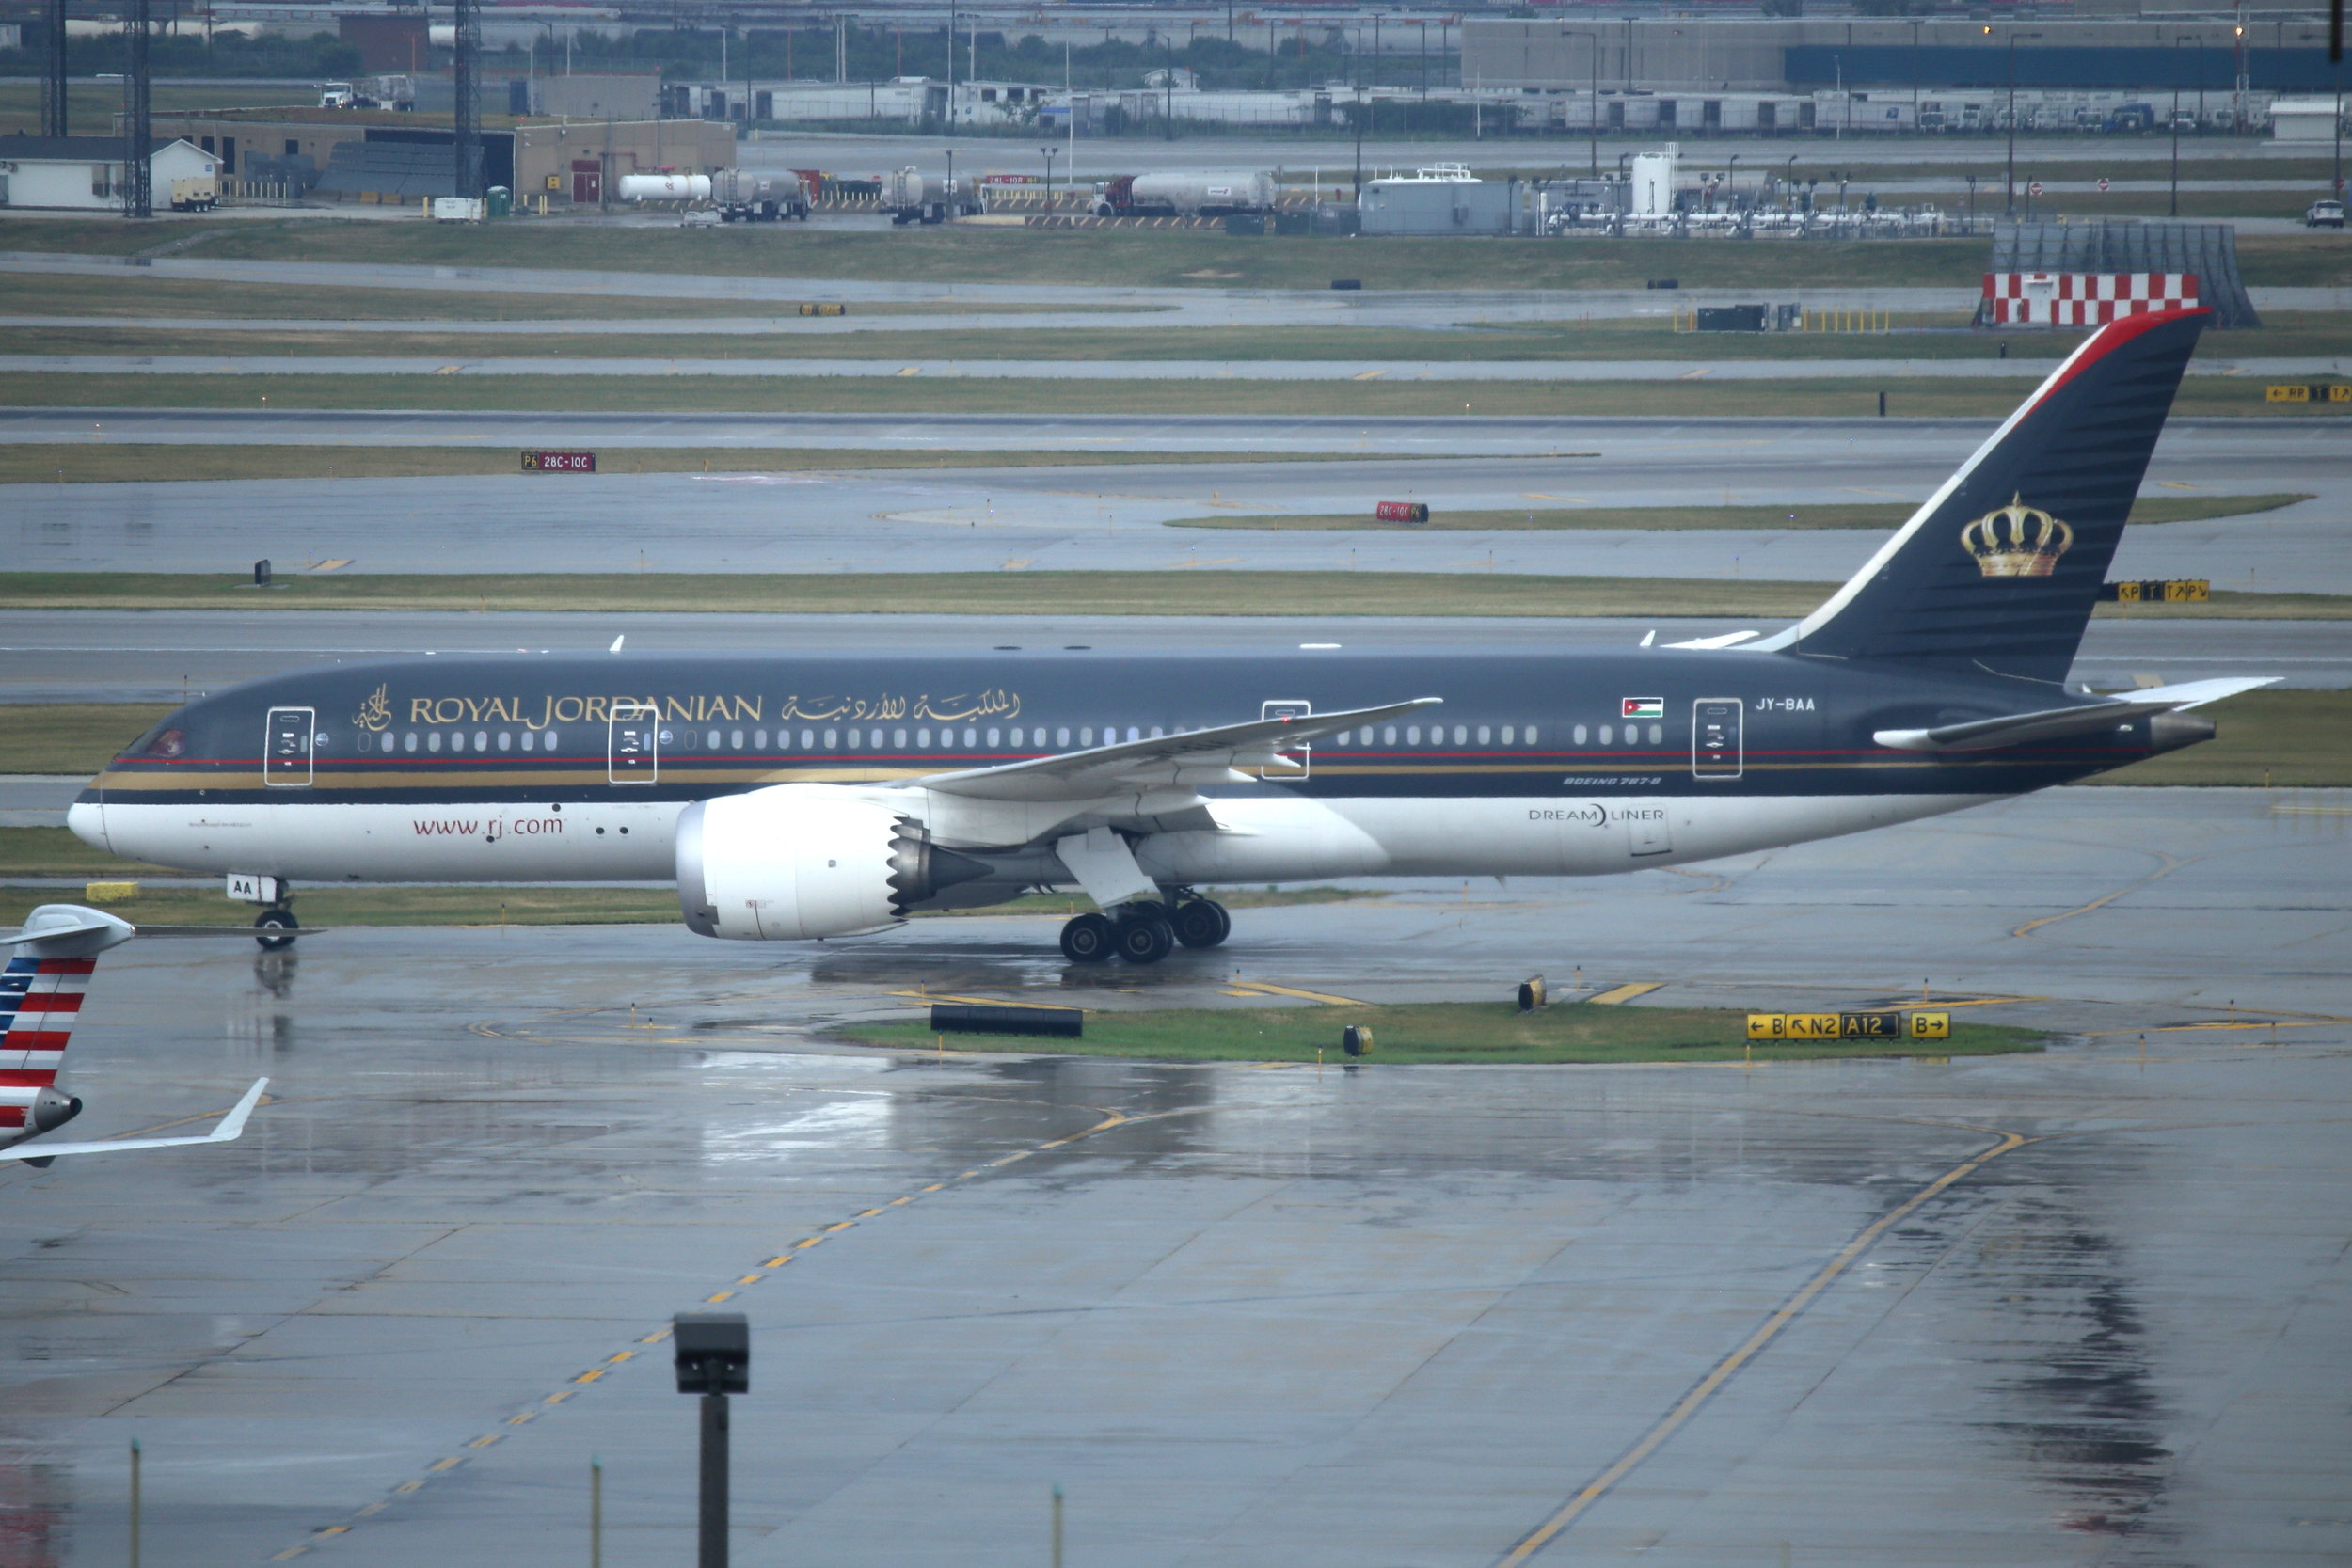 JY-BAA Royal Jordanian B787-8 taken from the Hilton Hotel at Chicago O'Hare Airport 21st July 2018 by John Wood